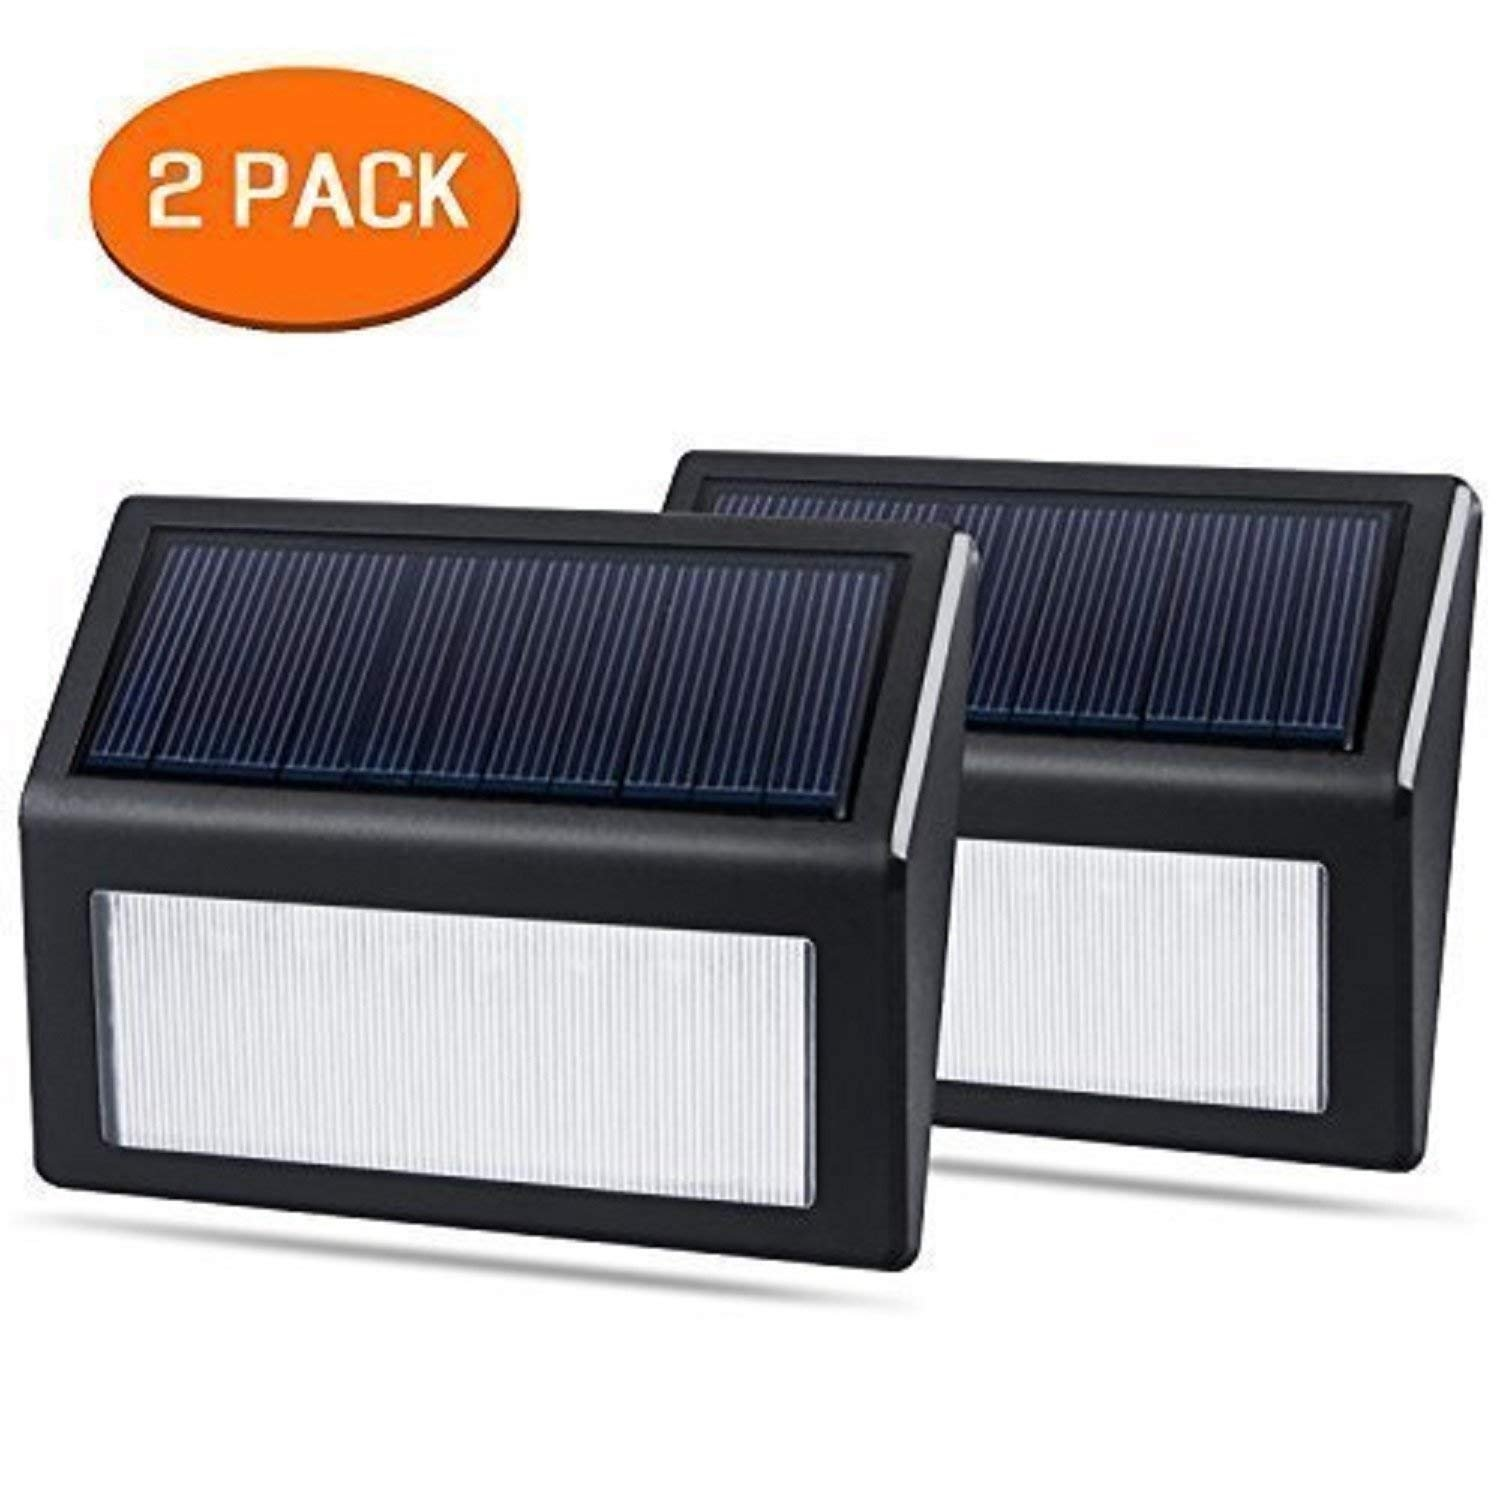 Solar Lights, LShine 6 LED Solar Lights Outdoor,Solar Powered Wireless Waterproof Exterior Security Wall Light for Patio,Deck,Yard,Garden,Path,Home,Driveway,Stairs(2Pack White Light)